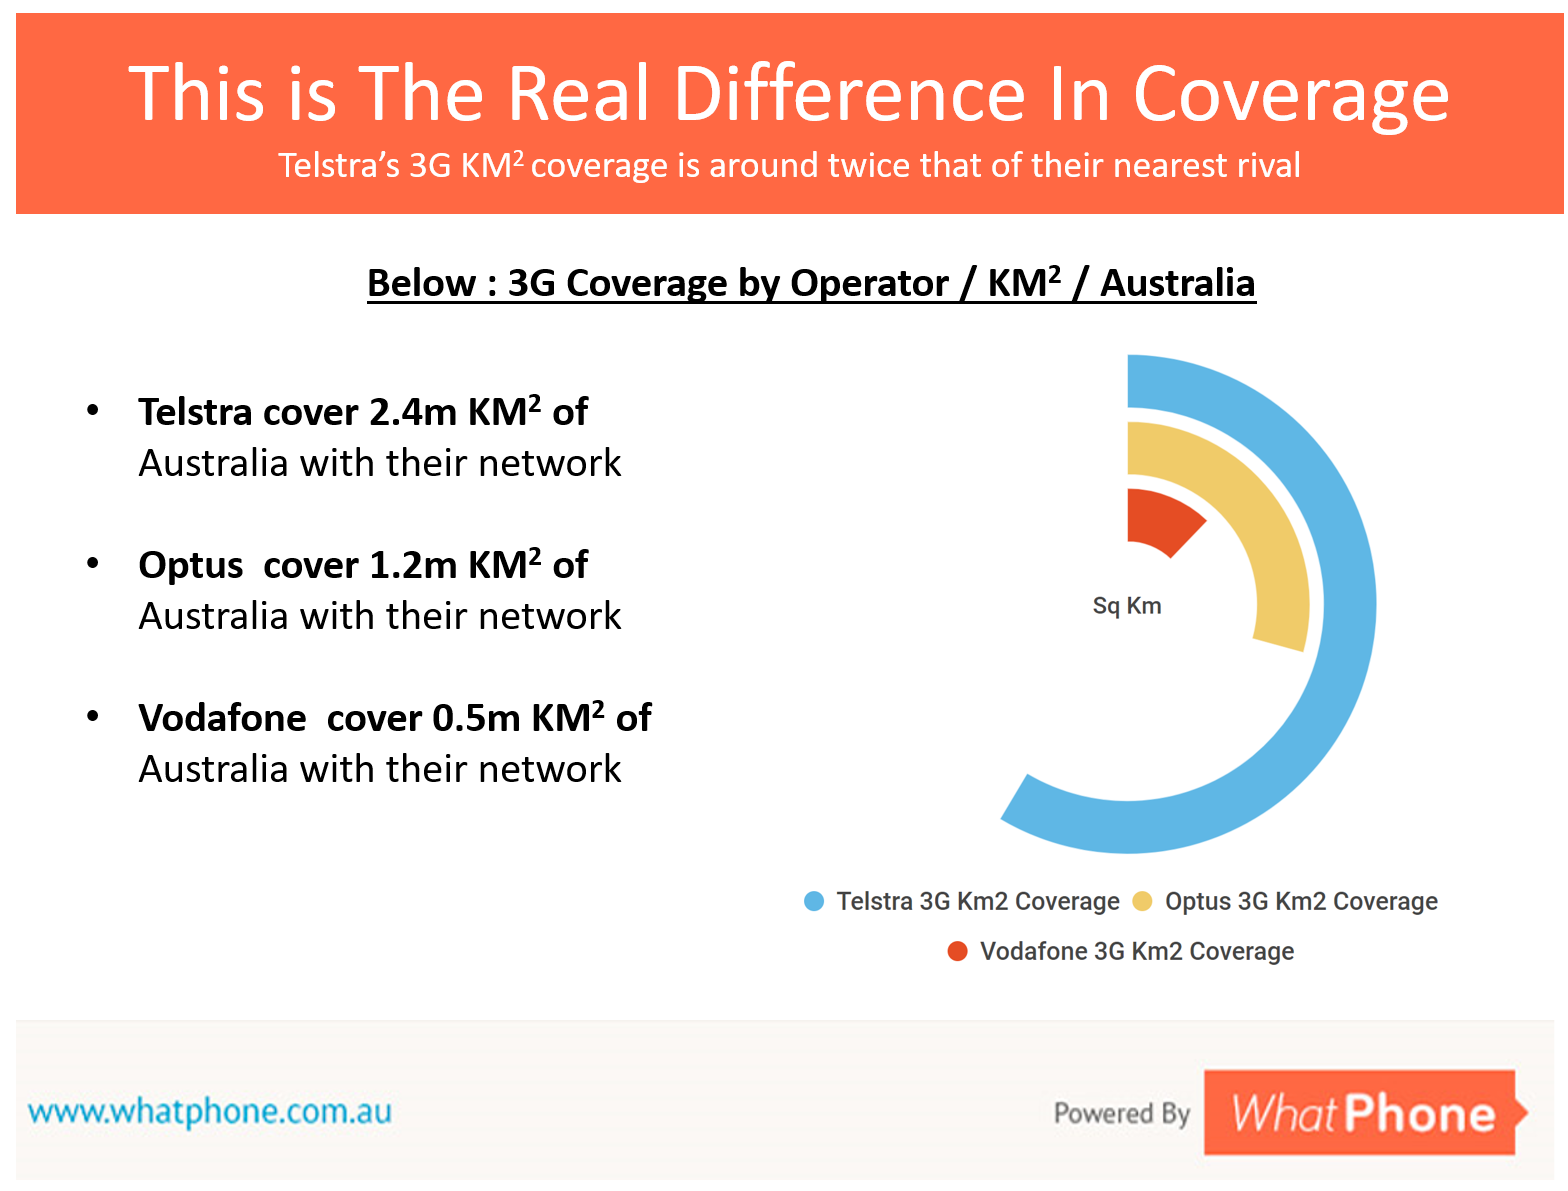 This is the real difference in the network your cheap phone plan will give you access to. Telstra cover around twice as much of the Australian landmass as either Optus or Vodafone.